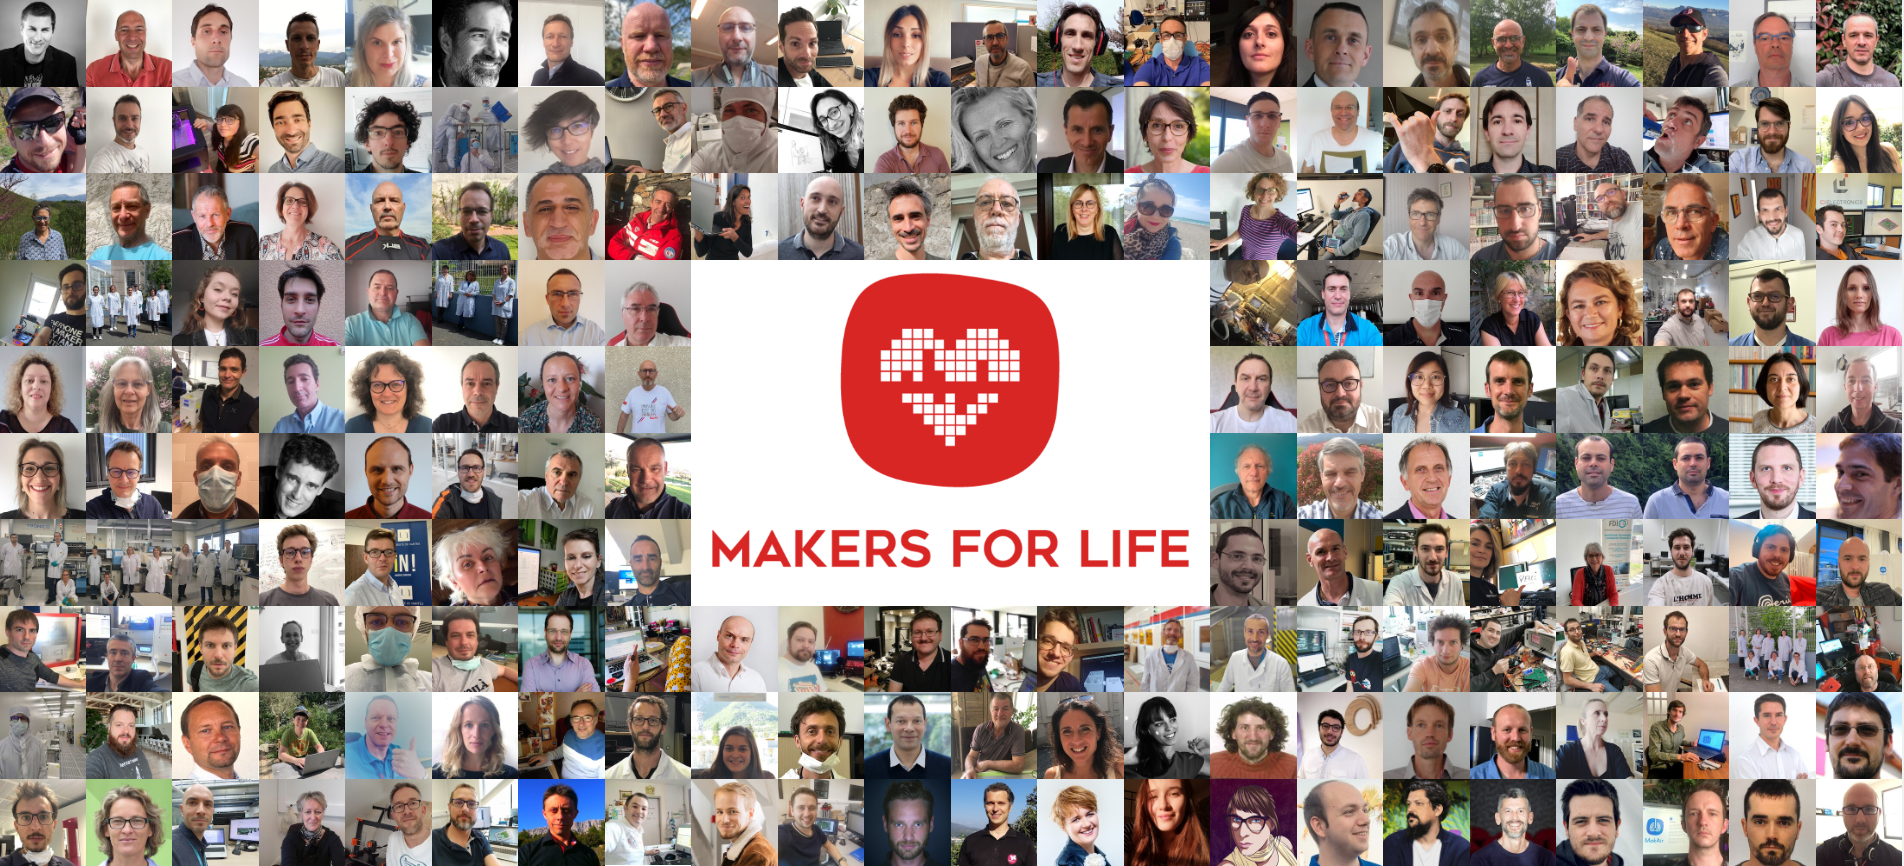 Makers for Life : Histoire d'un collectif